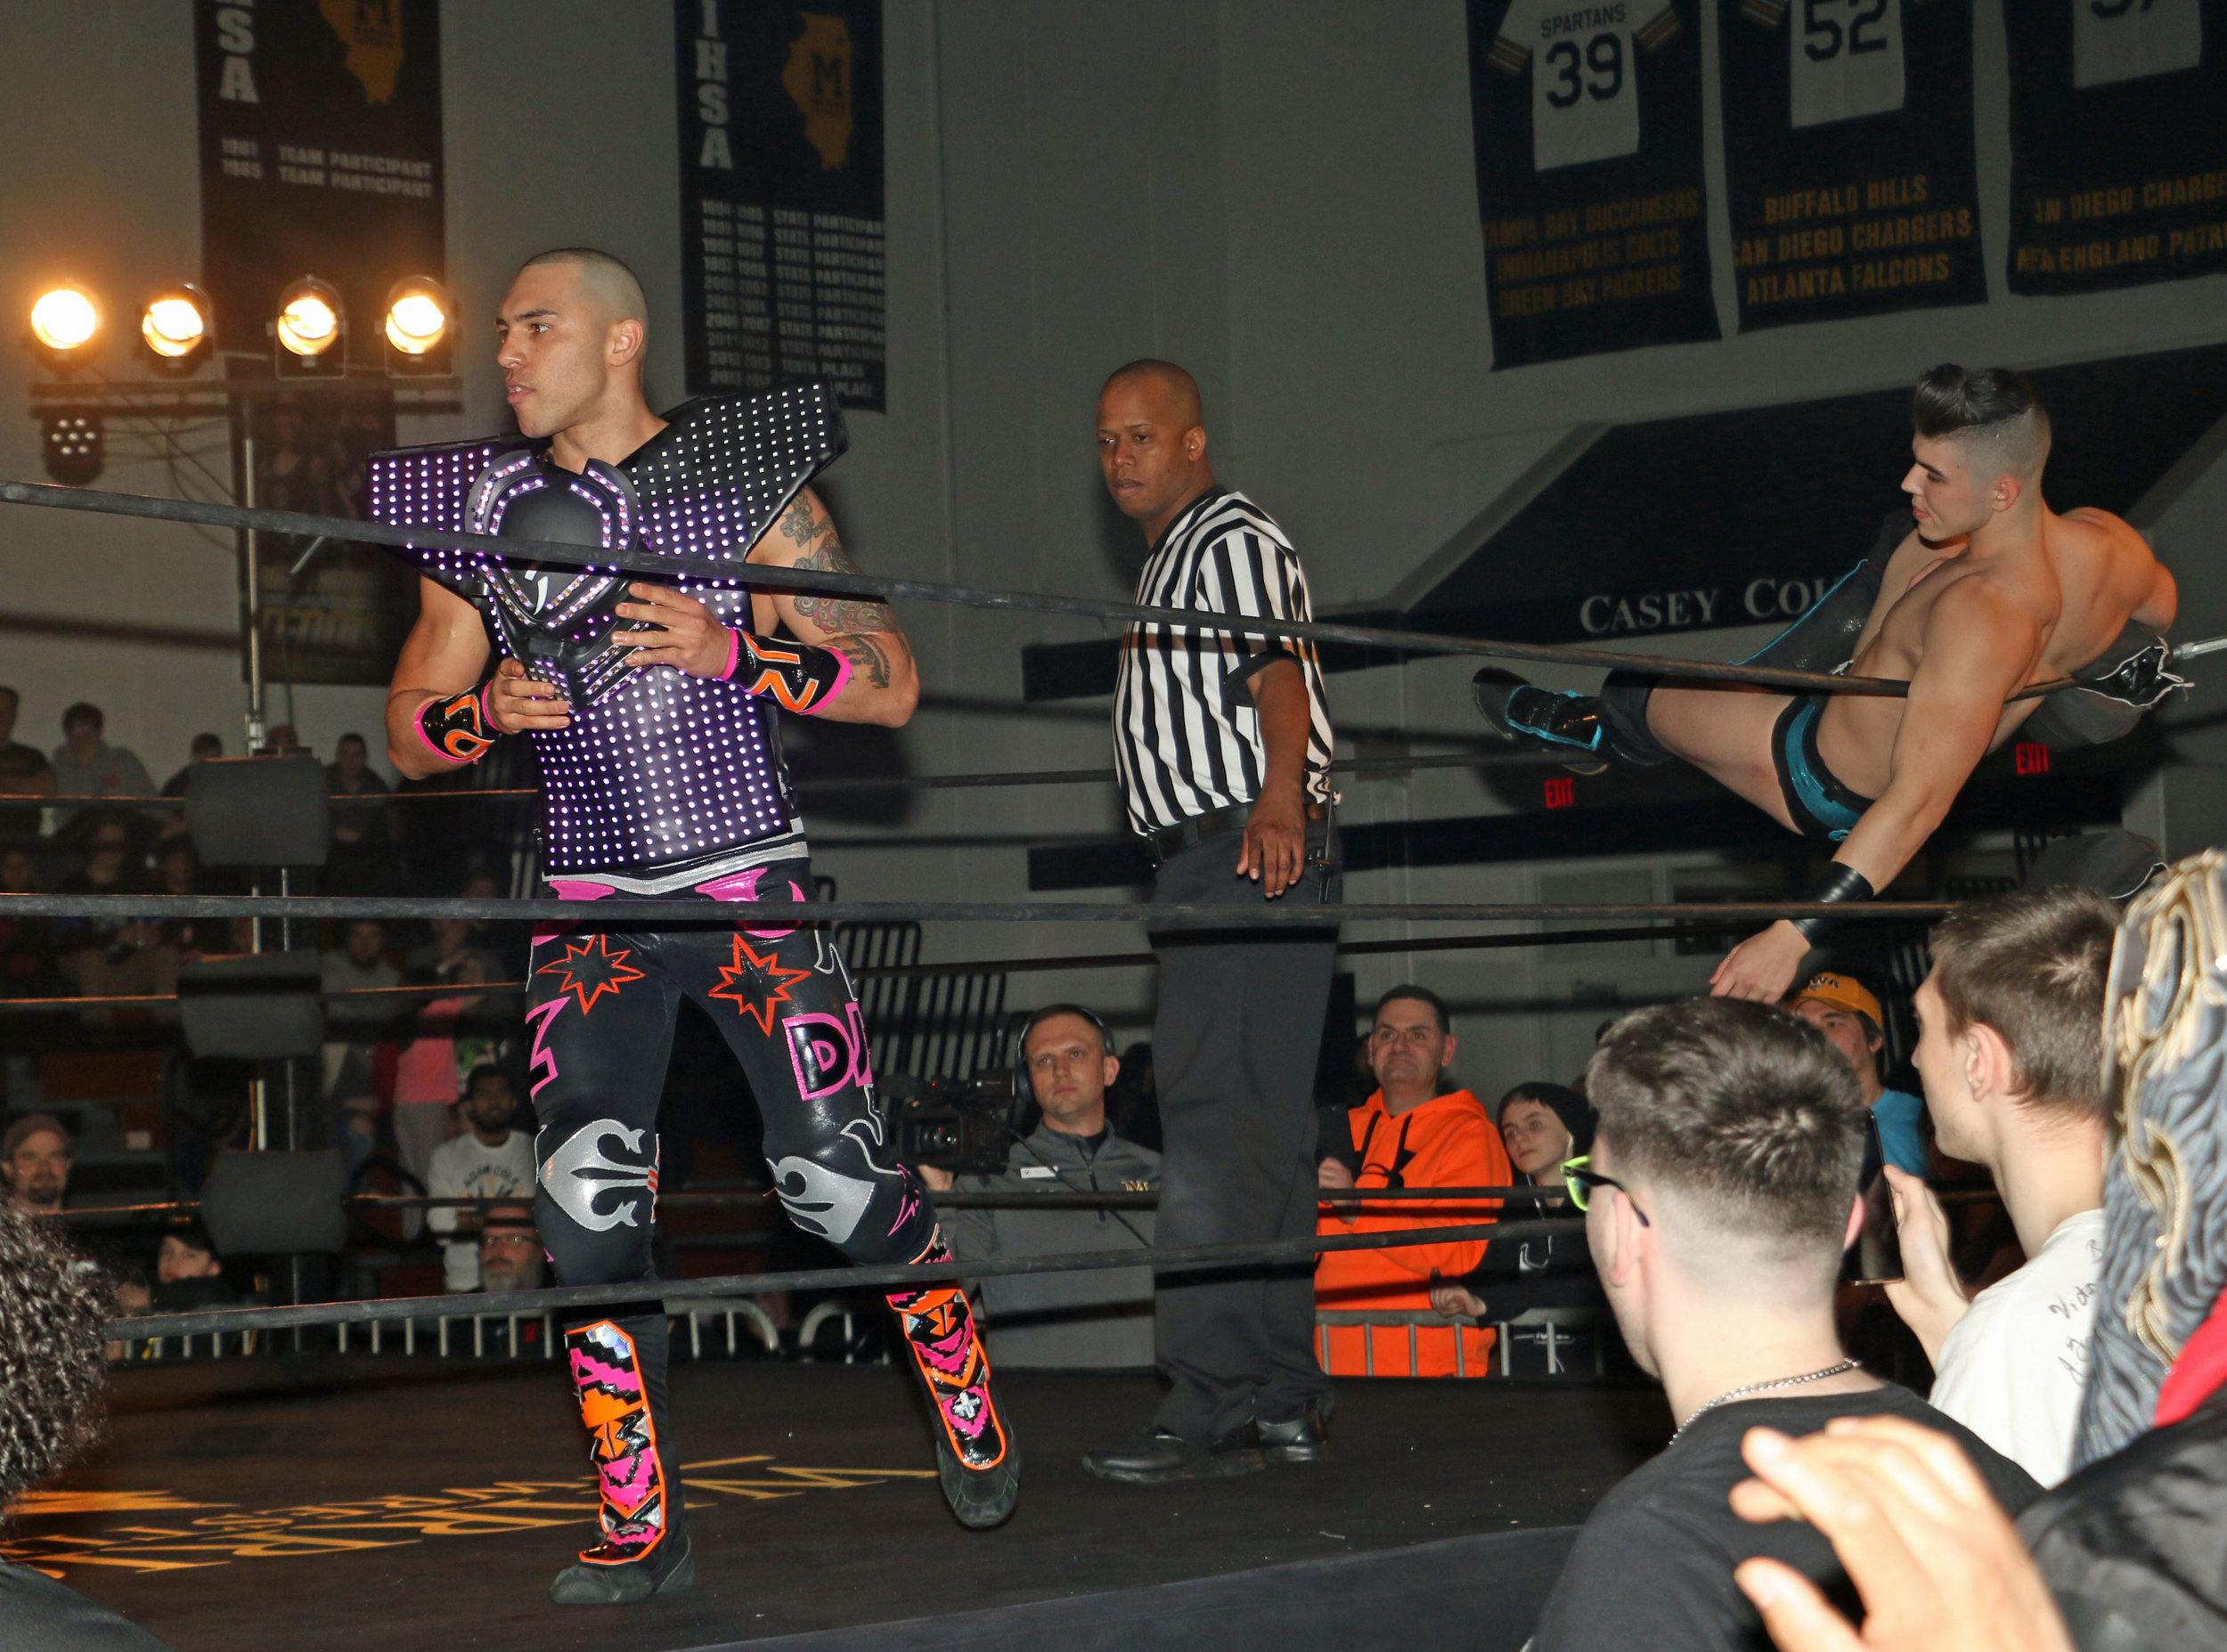 DJZ, left, prepares for the match while Sammy Guevara rests on the ropes.